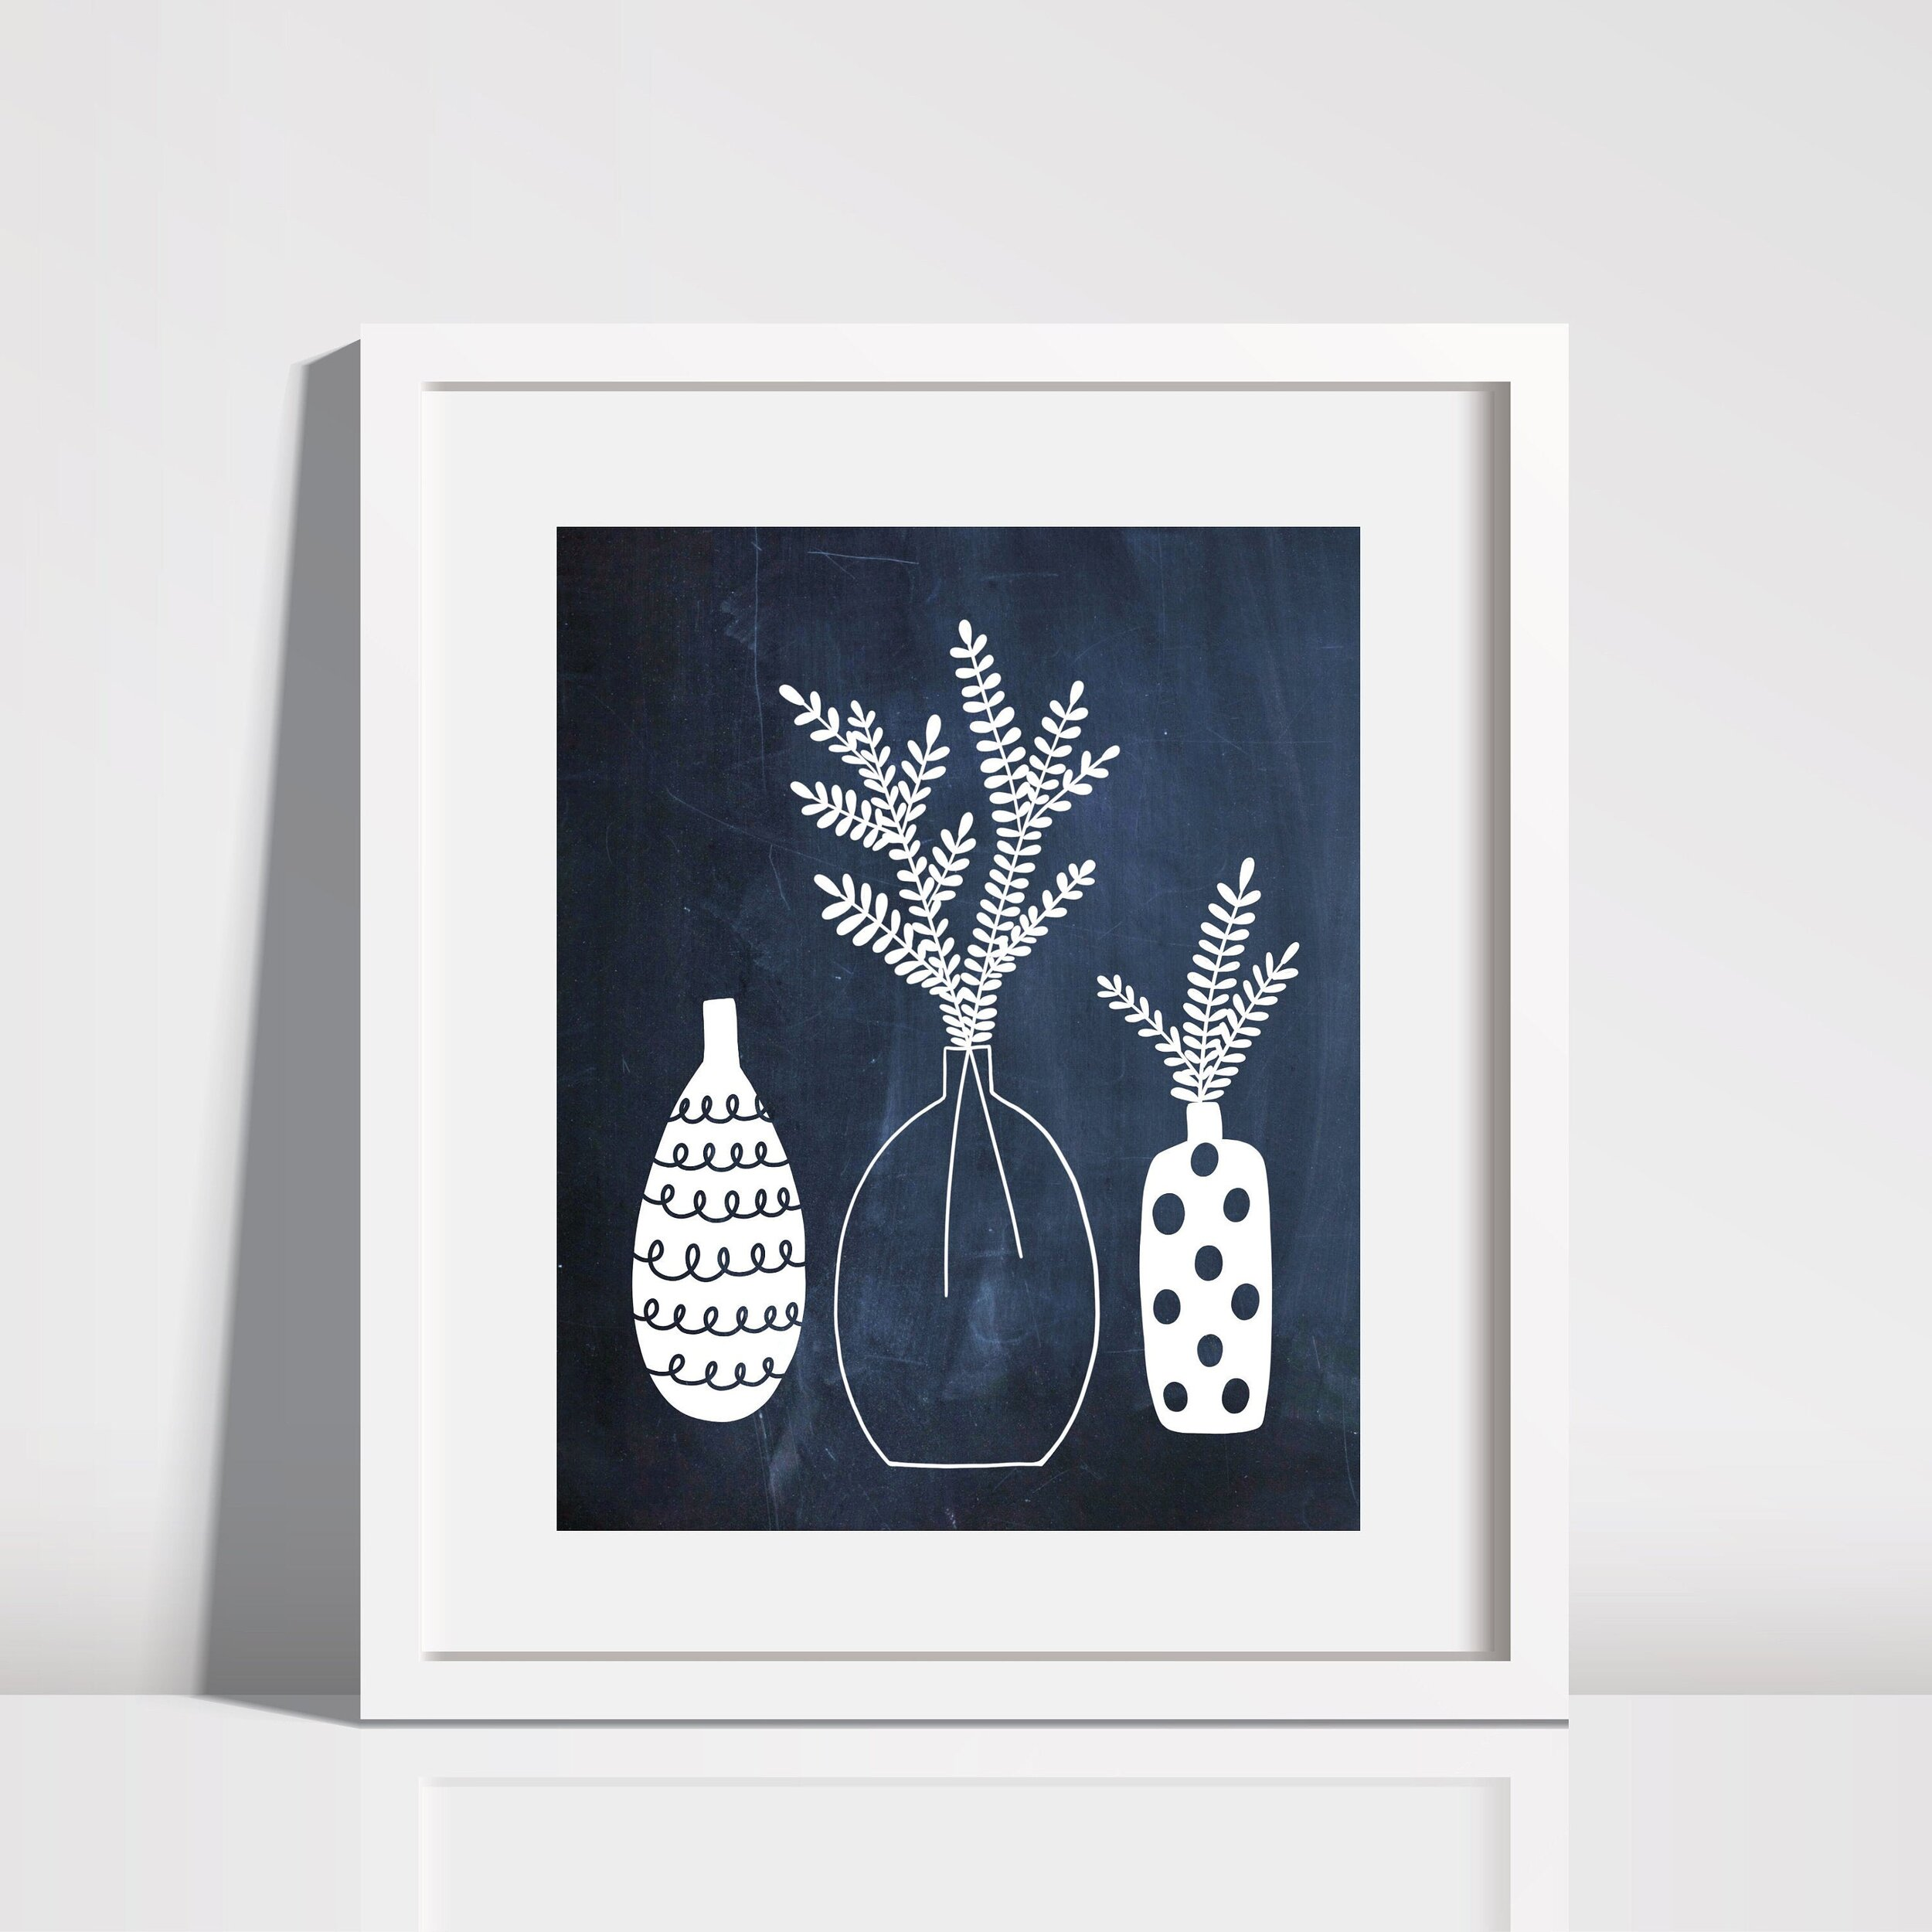 Downloadable Print at Home Vase Navy and White Wall Art Print by Lisa Nohren Designs